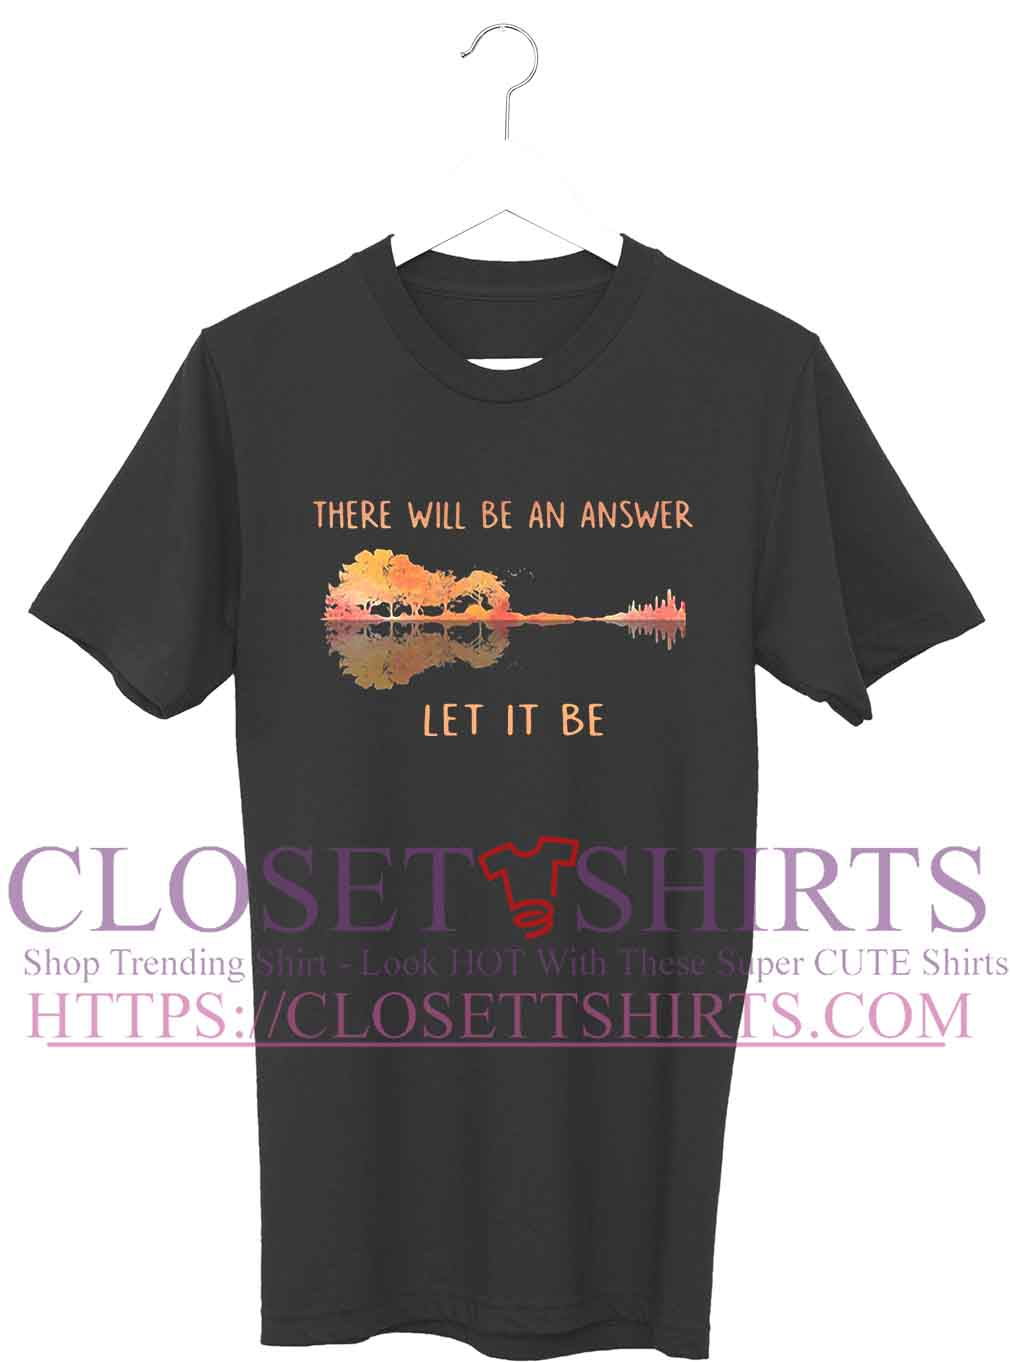 719e72bd6 There will be an answer let it be Guitar shirt, ladies, v-neck t ...